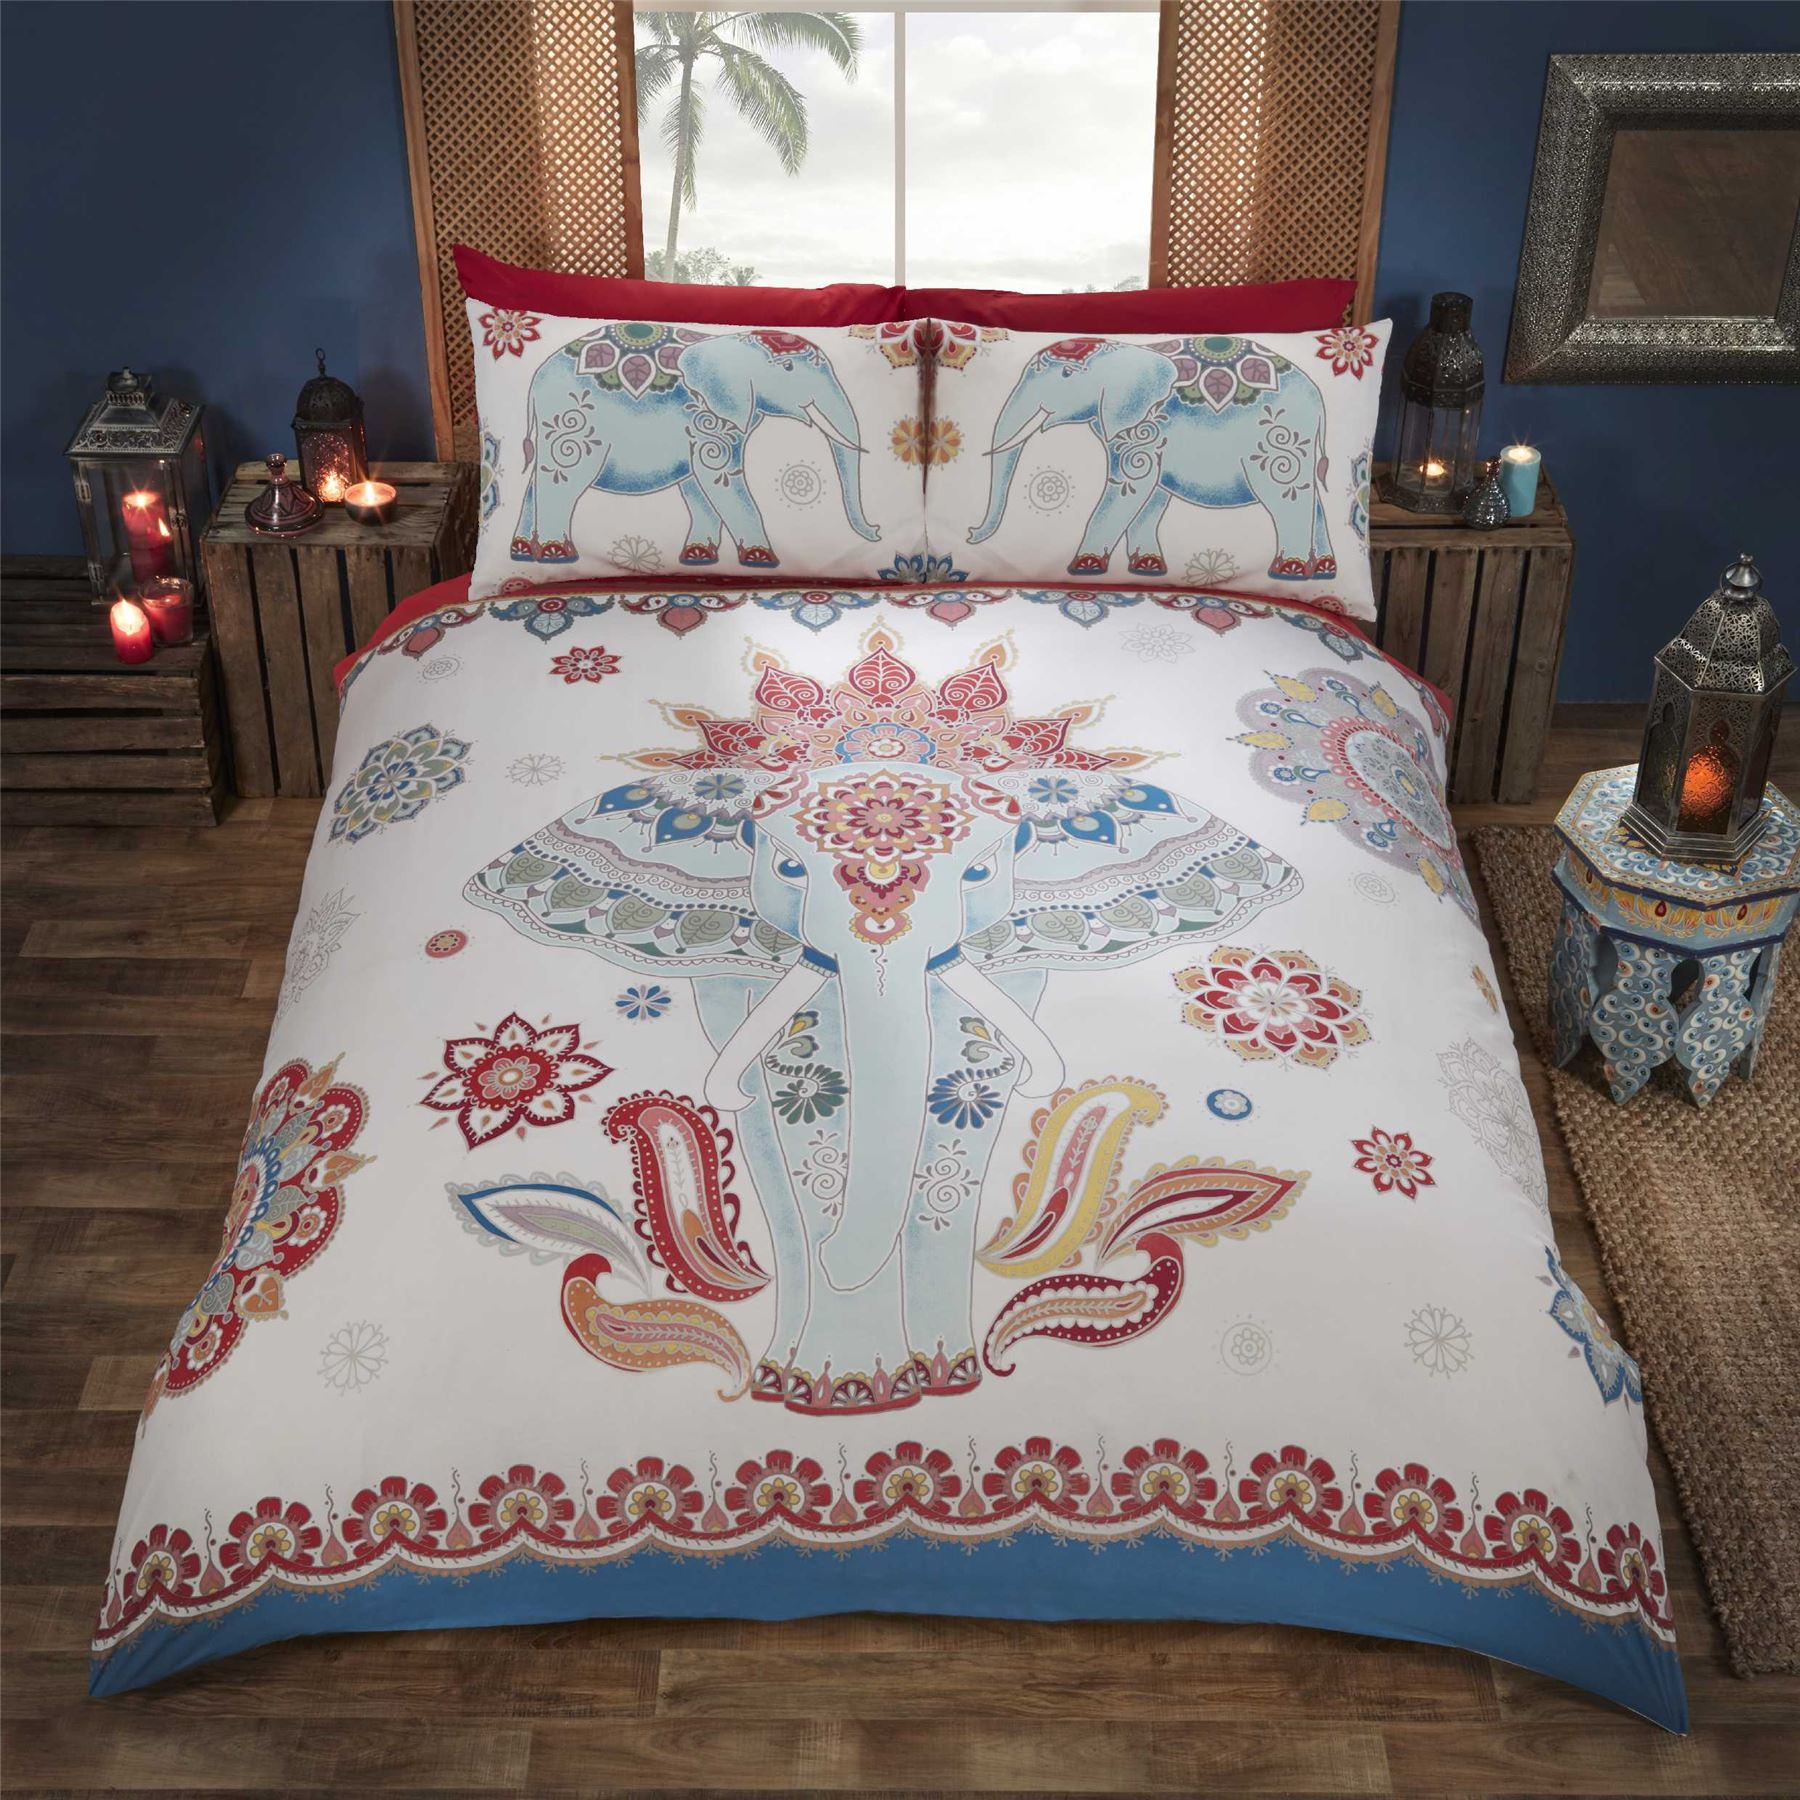 Indian Style Elephant Quilt Duvet Cover Amp Pillowcase